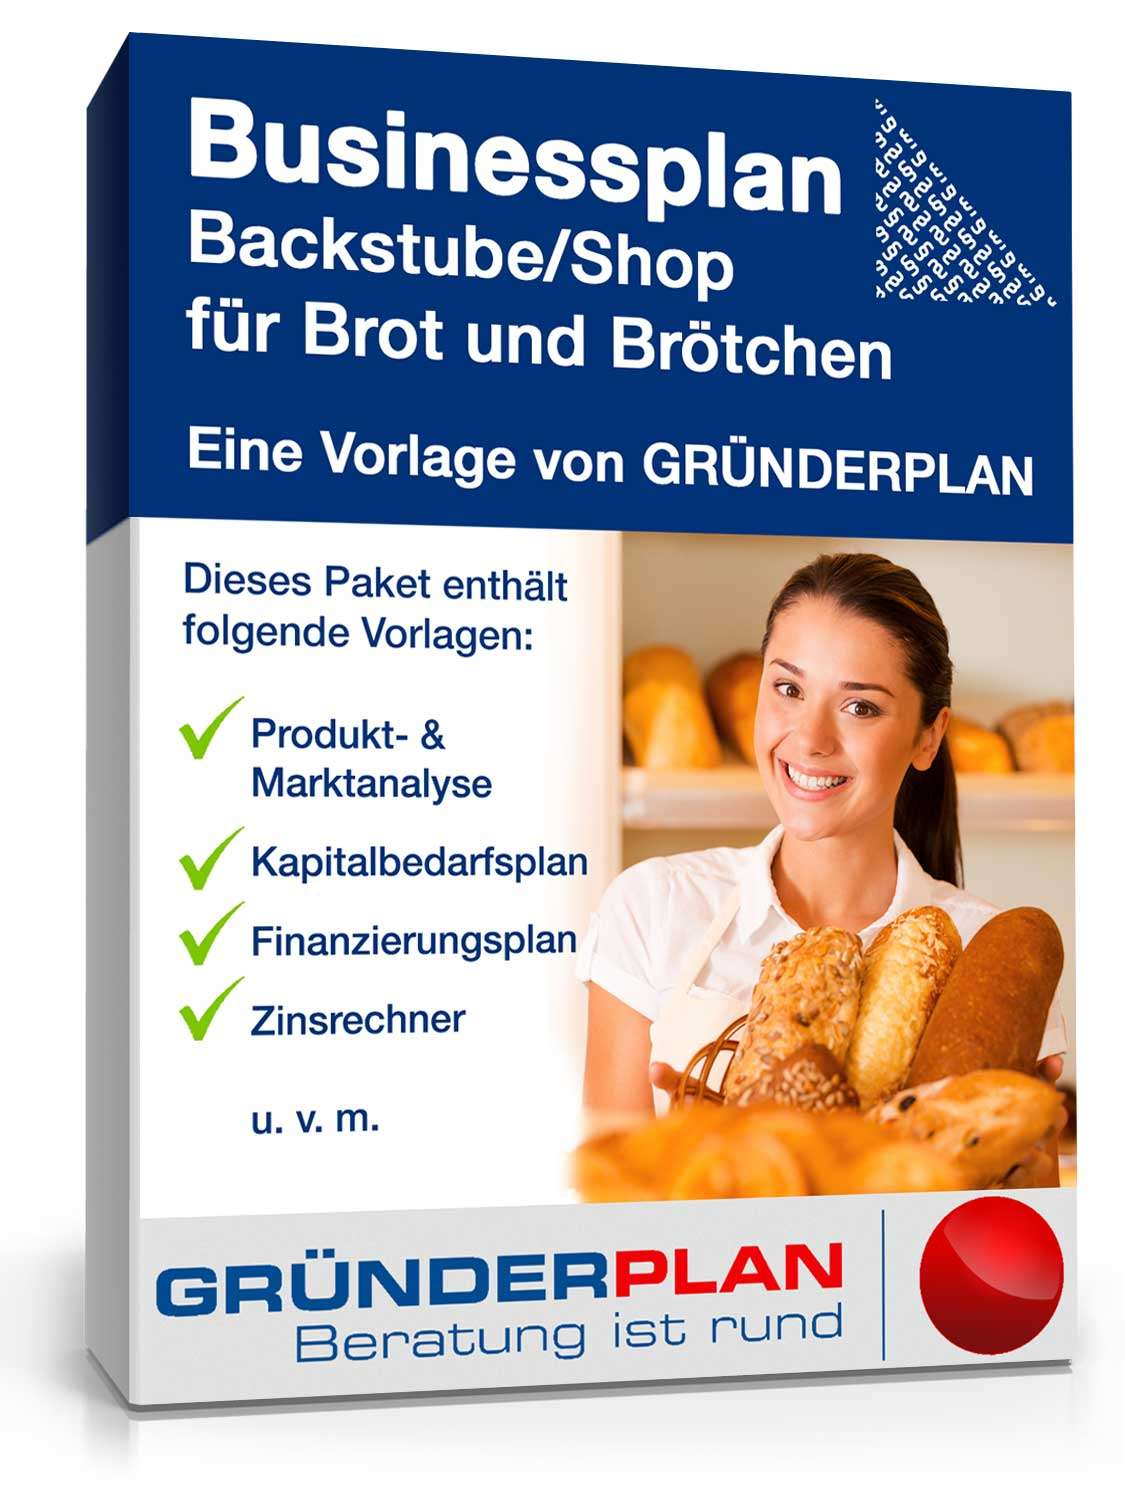 Businessplan Backstube/Back-Shop von Gründerplan